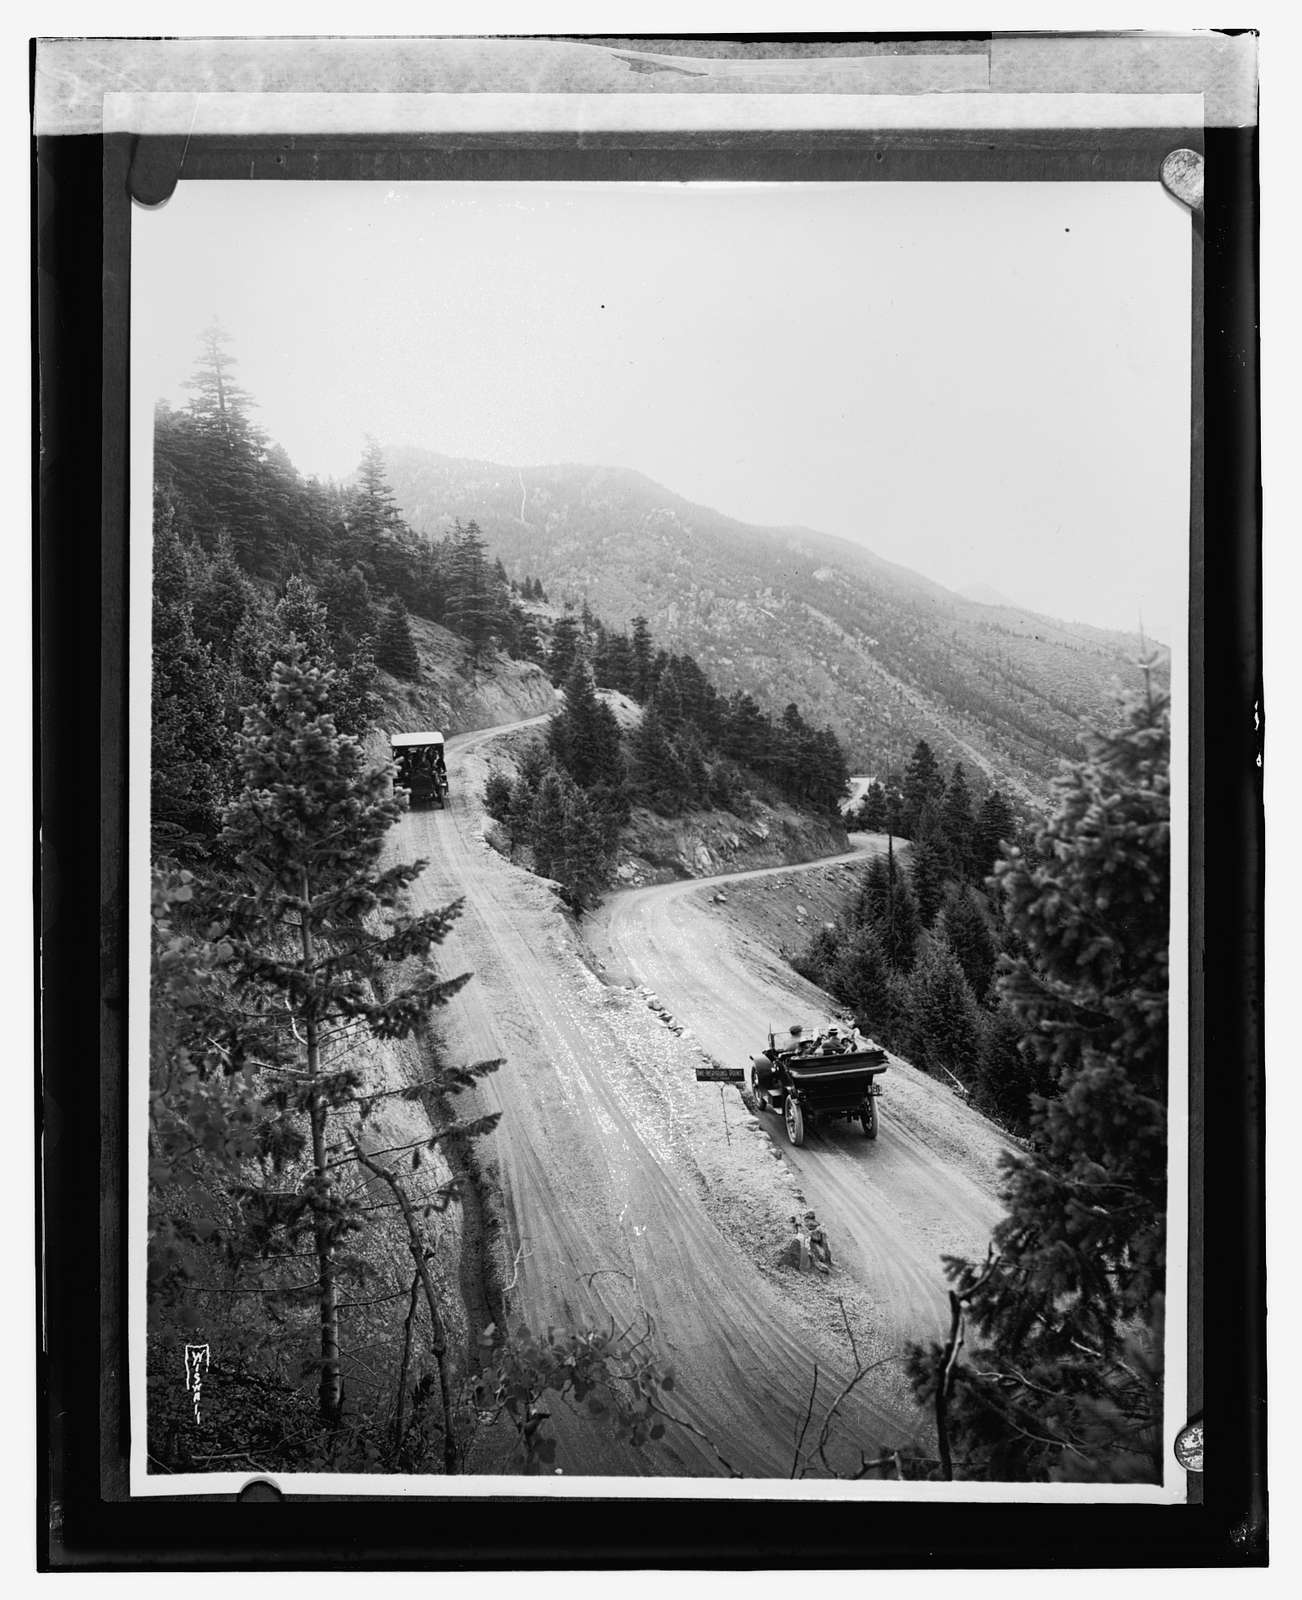 Mountain road with automobiles